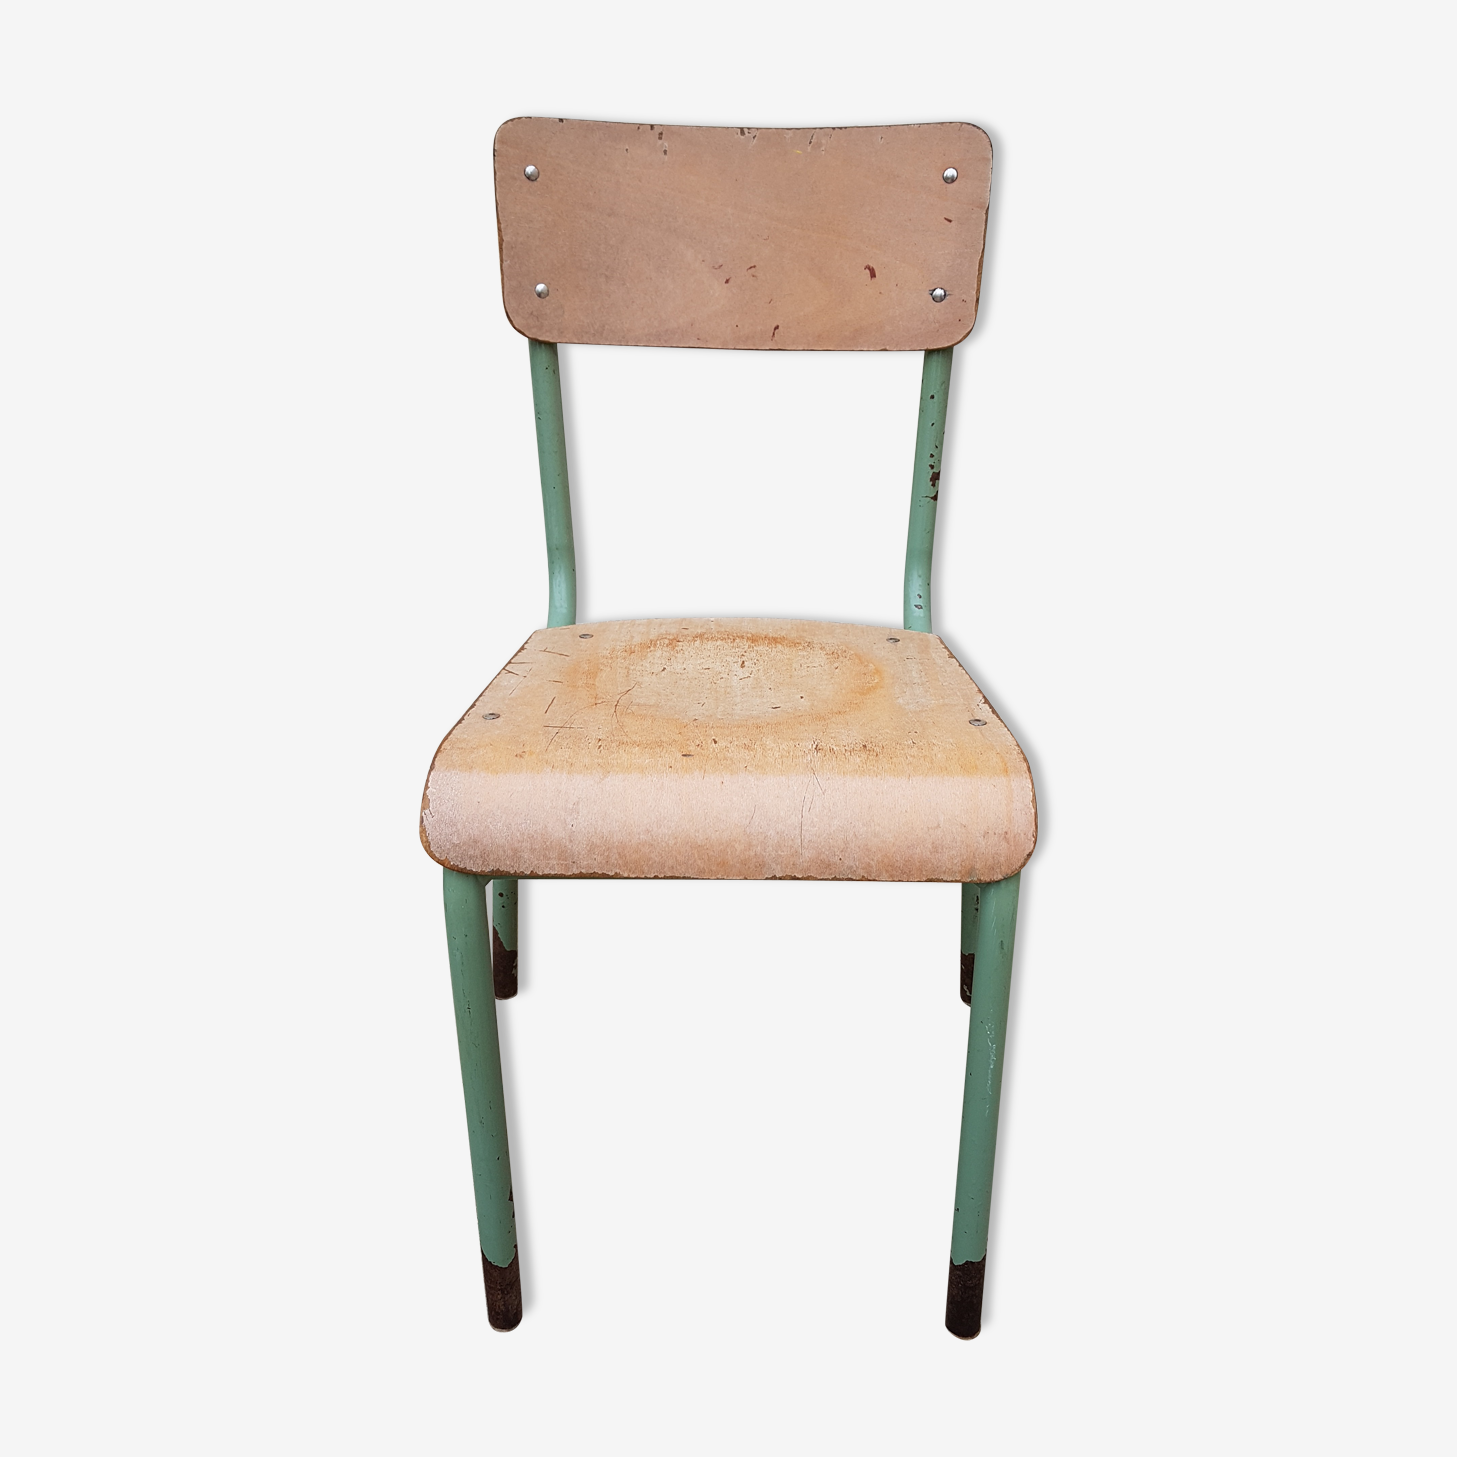 Old adult school Mullca chair